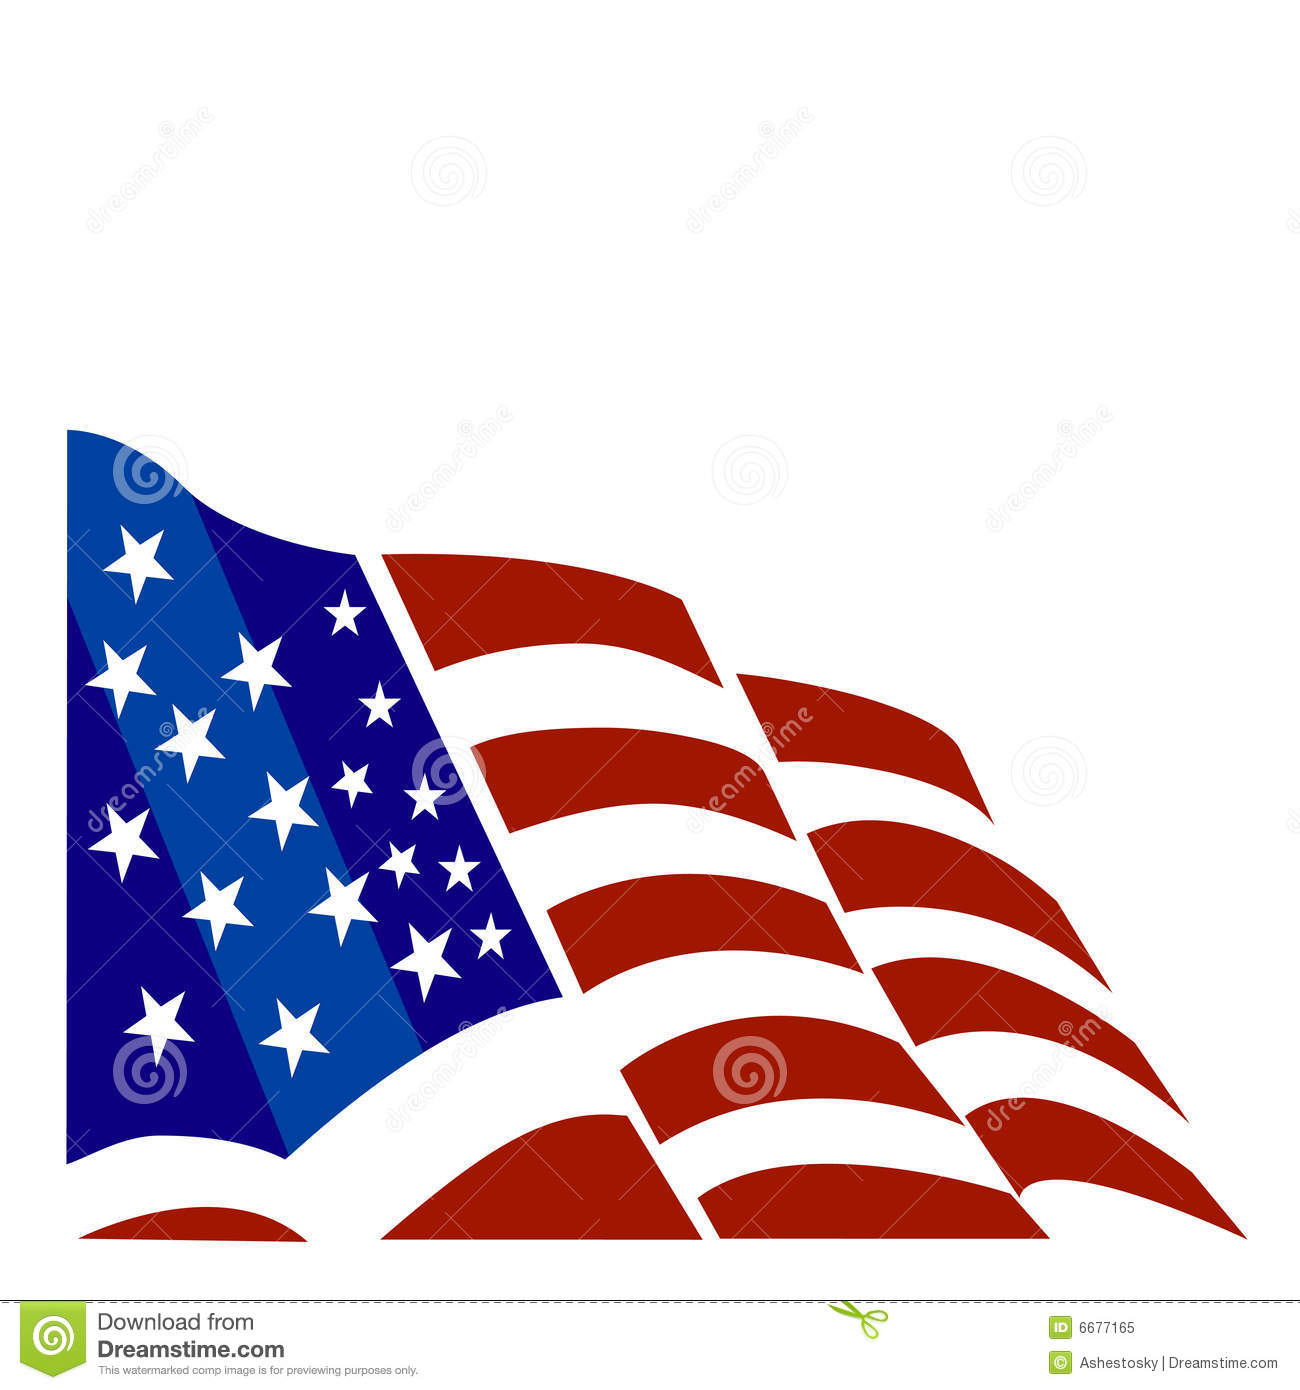 2ab6717aa1a Vectorial illustration for american flag. Designers Also Selected These  Stock Illustrations. American flag background royalty free illustration